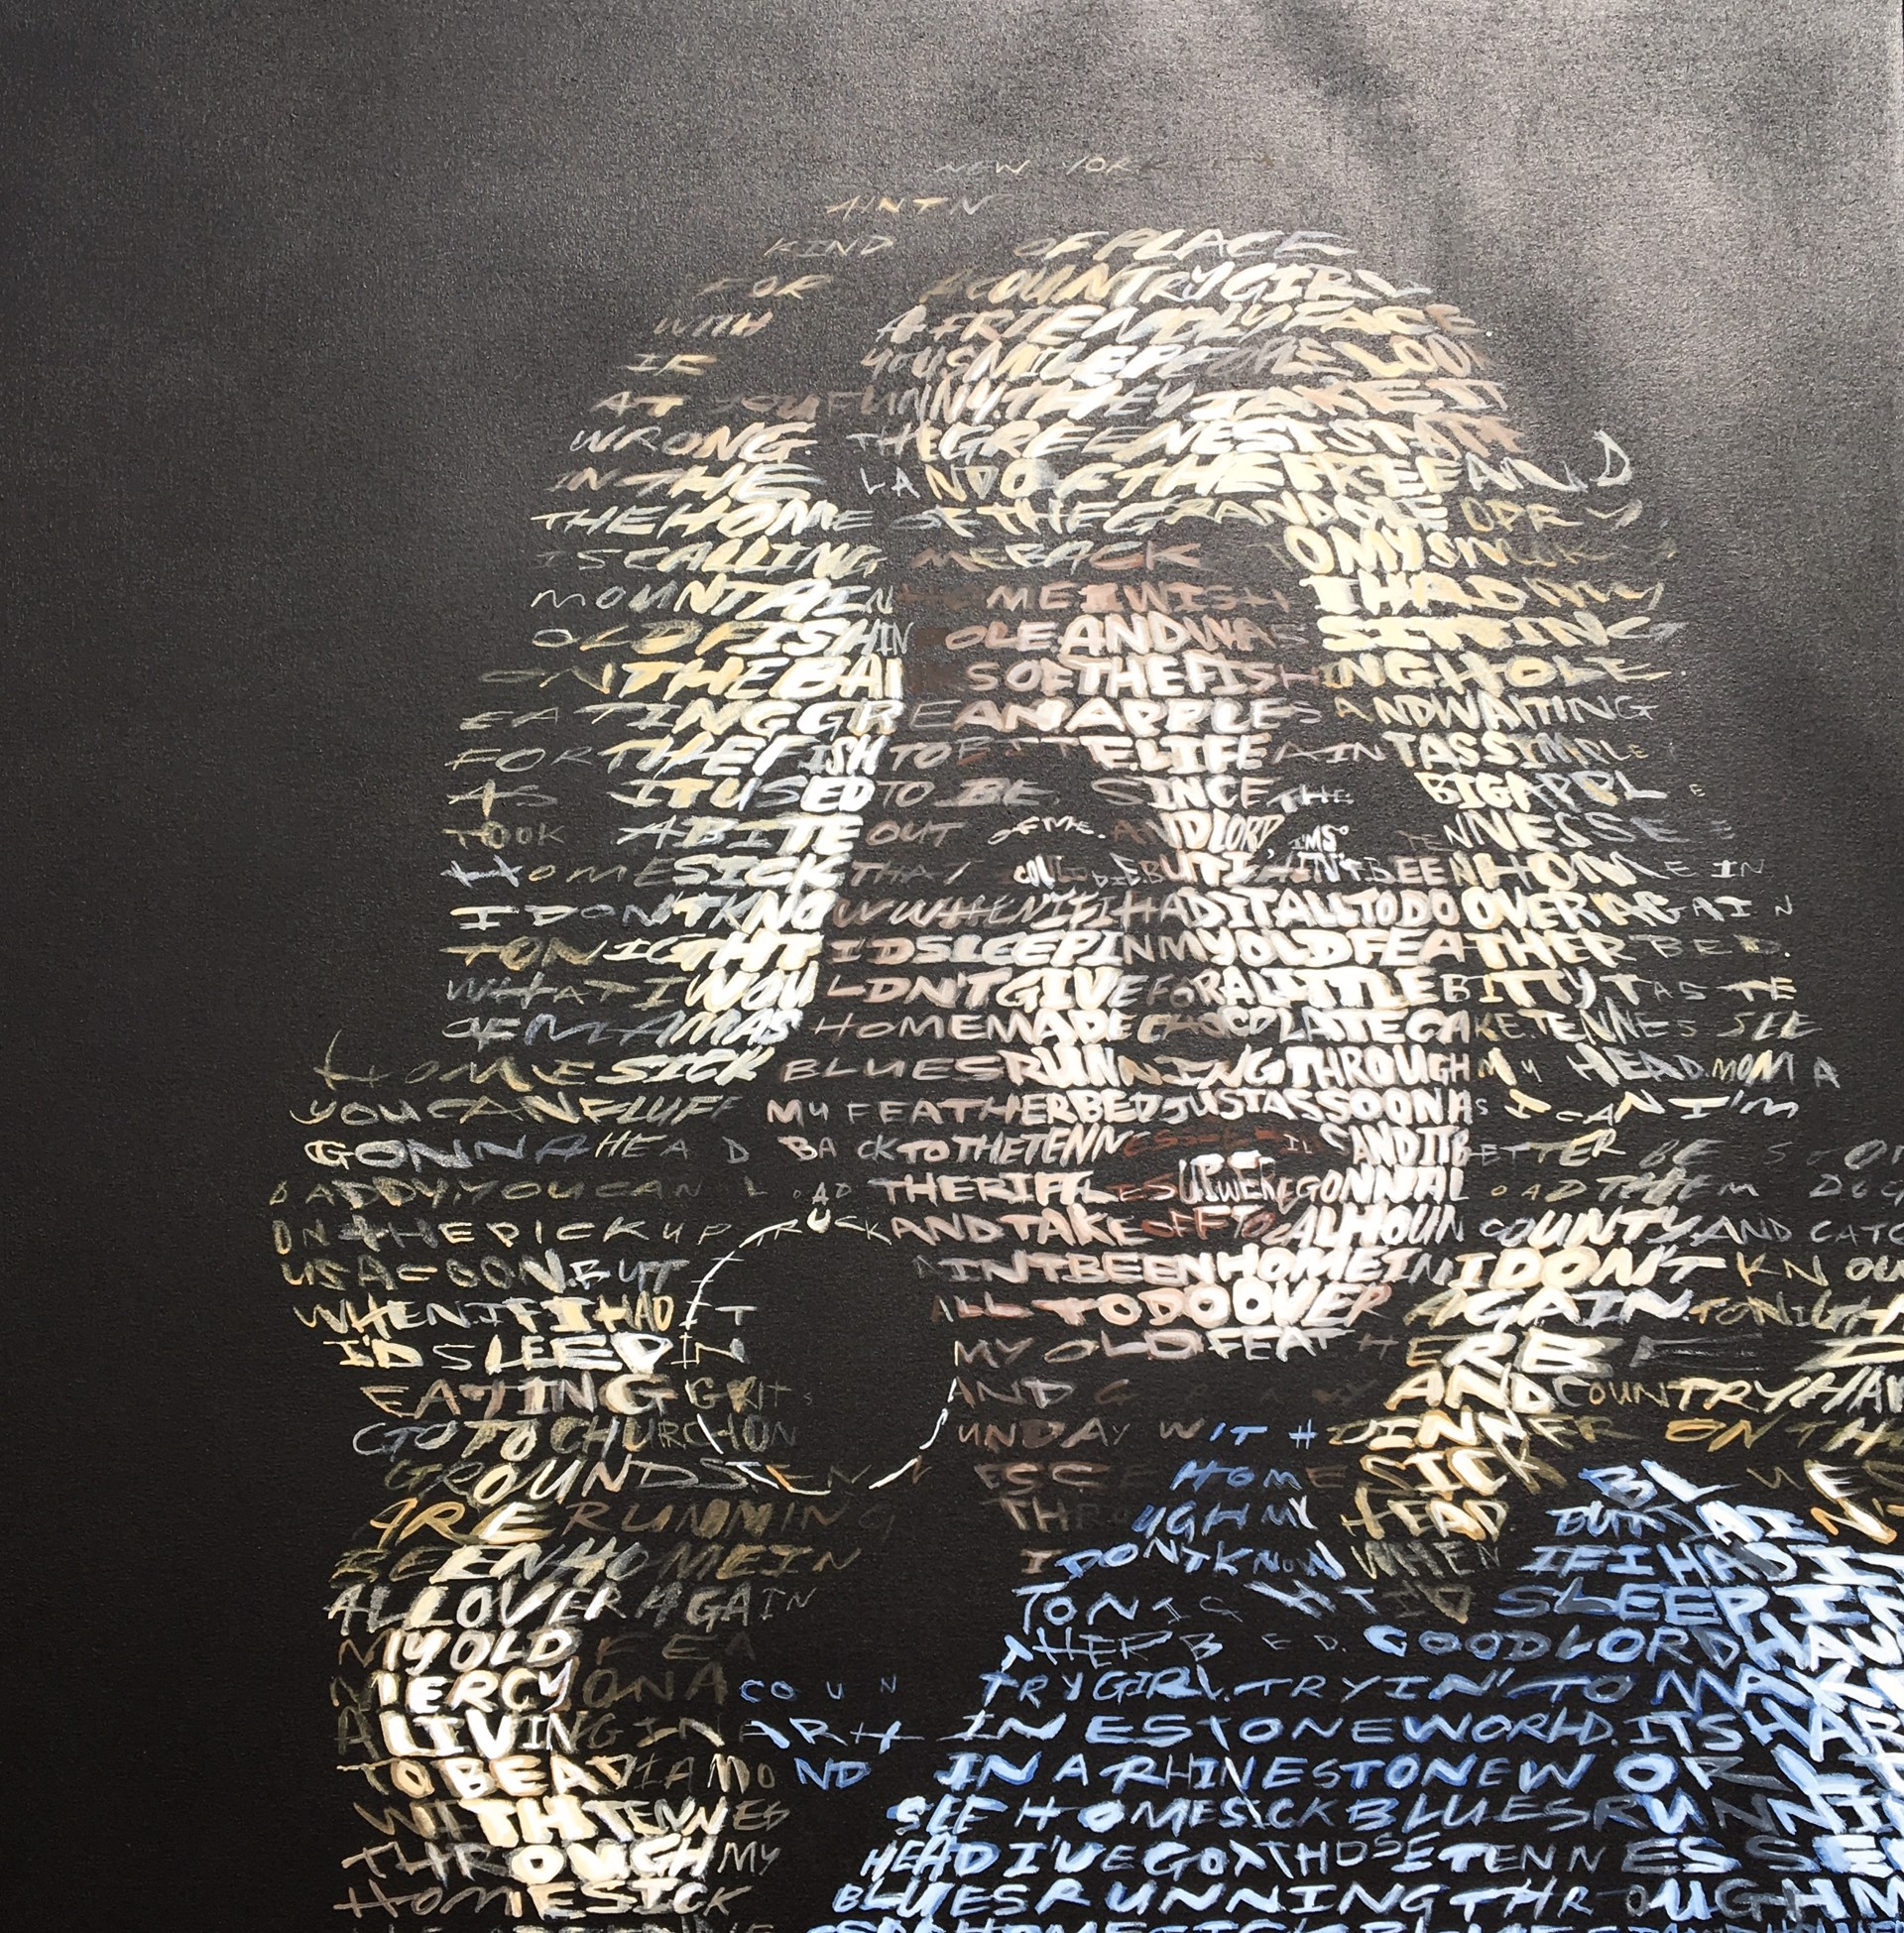 Dolly Parton (Text: Lyrics to Tennesssee Homesick Blues) by David Hollier